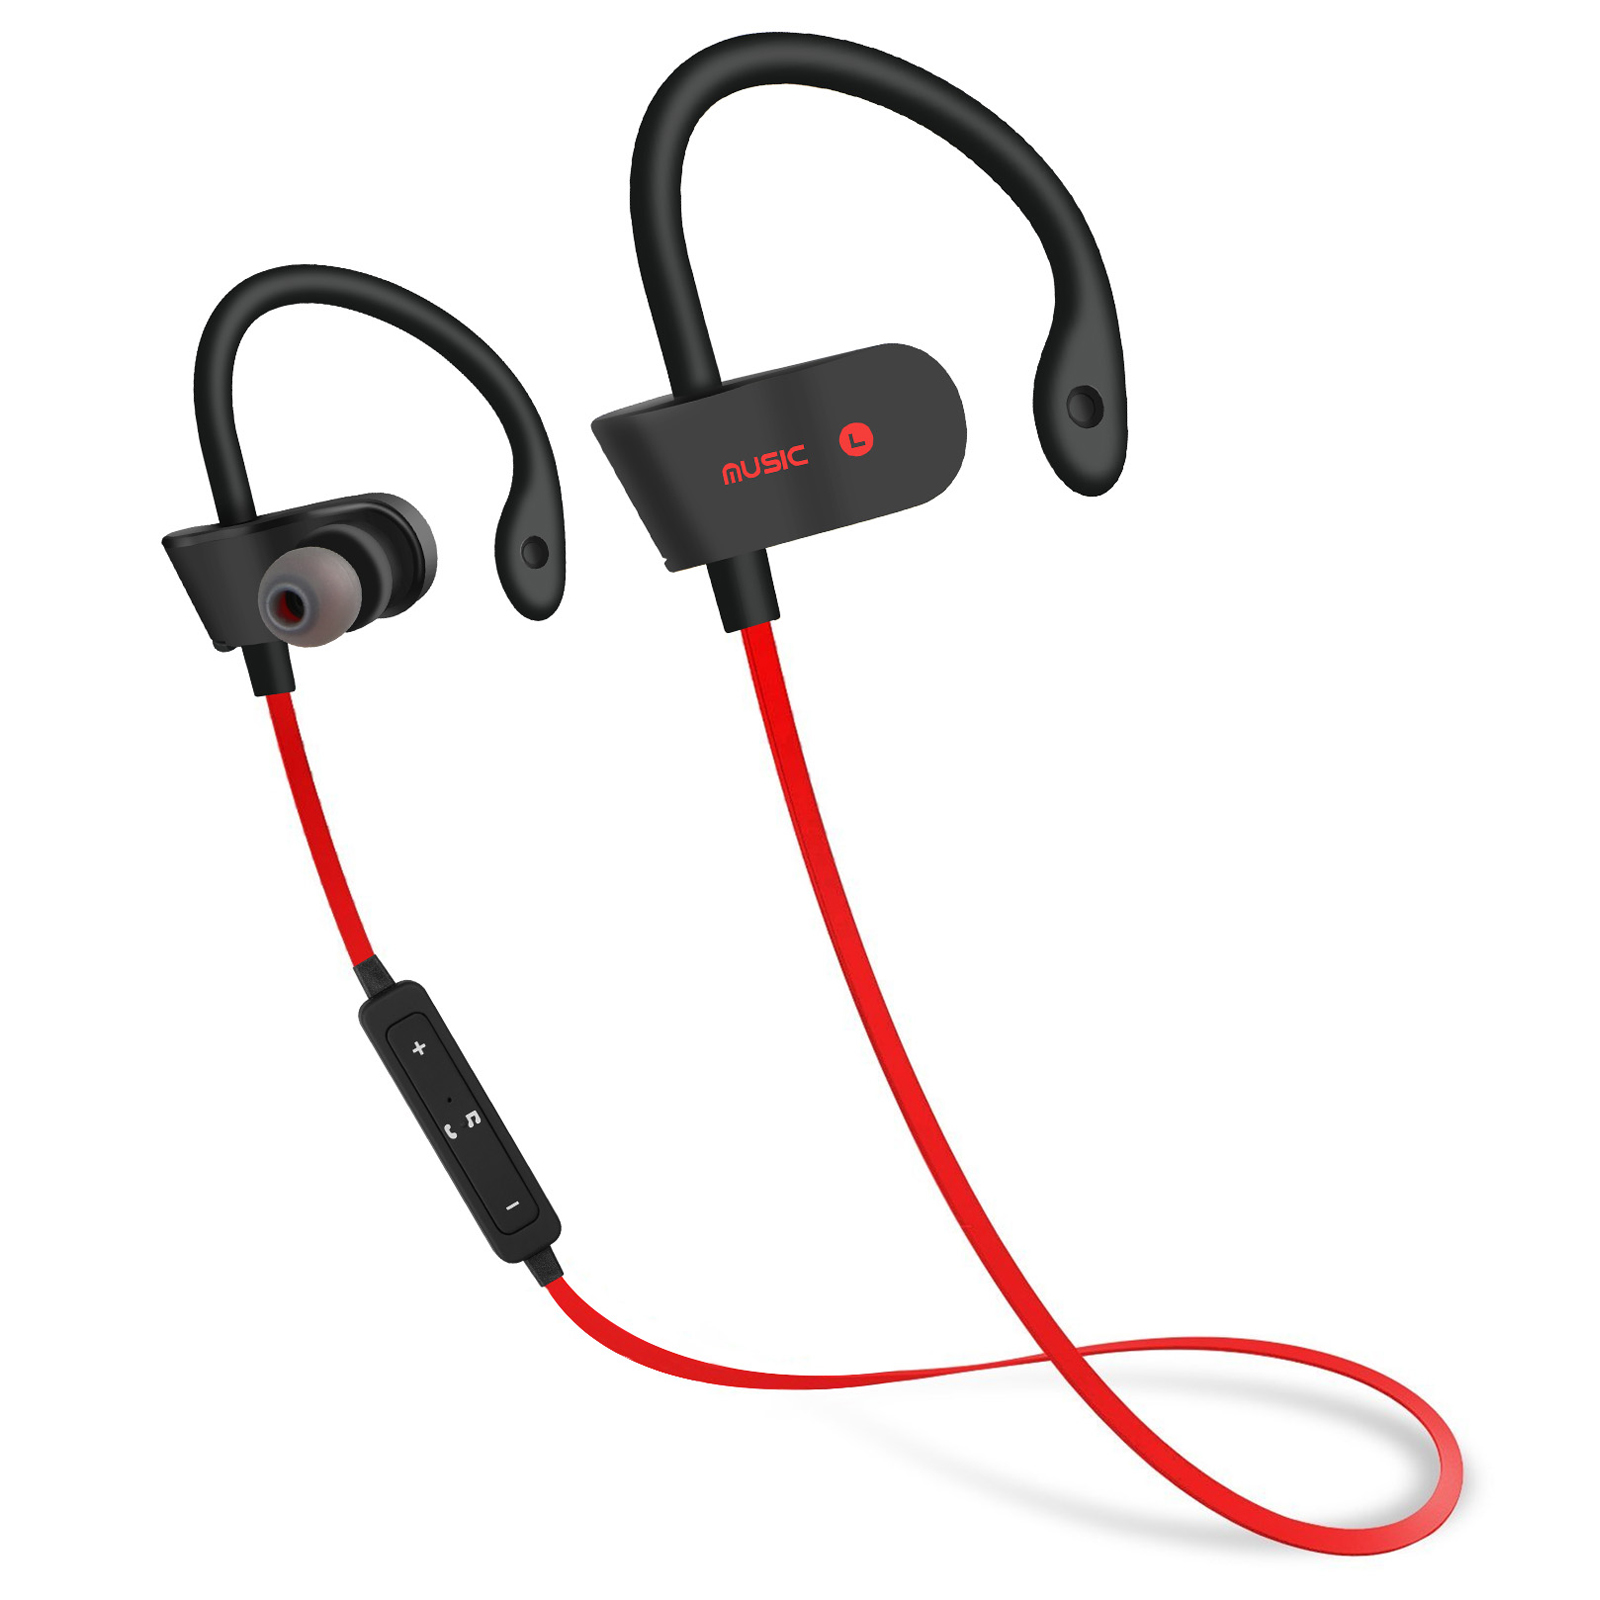 Wireless Bluetooth 4.1 Earphone Earbuds Sport Bass Stereo Surround In-Ear Headphone Headset with MIC Microphone Red